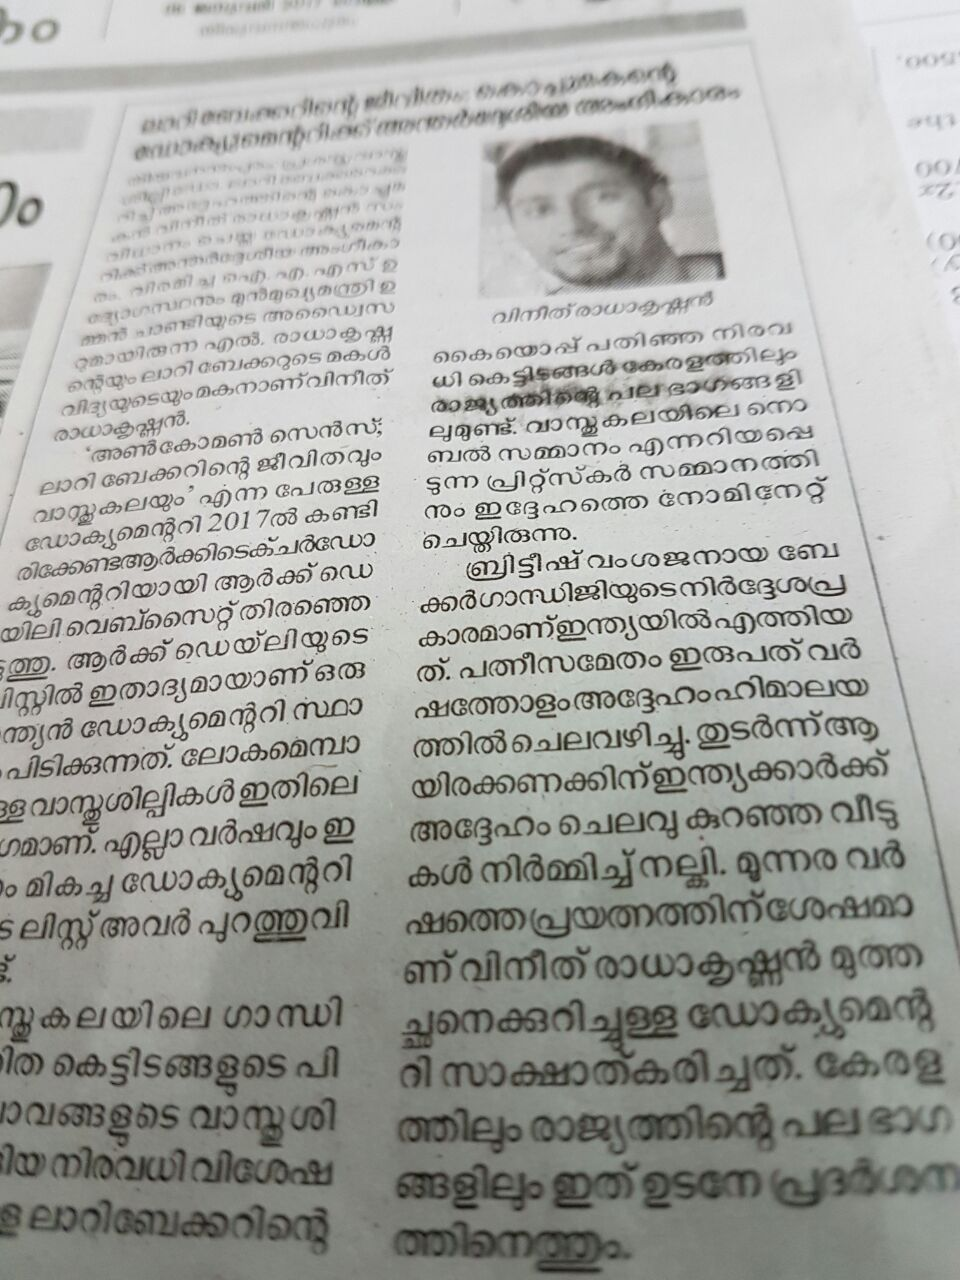 ArchDaily Kerala Kaumudi Coverage Jan 6th